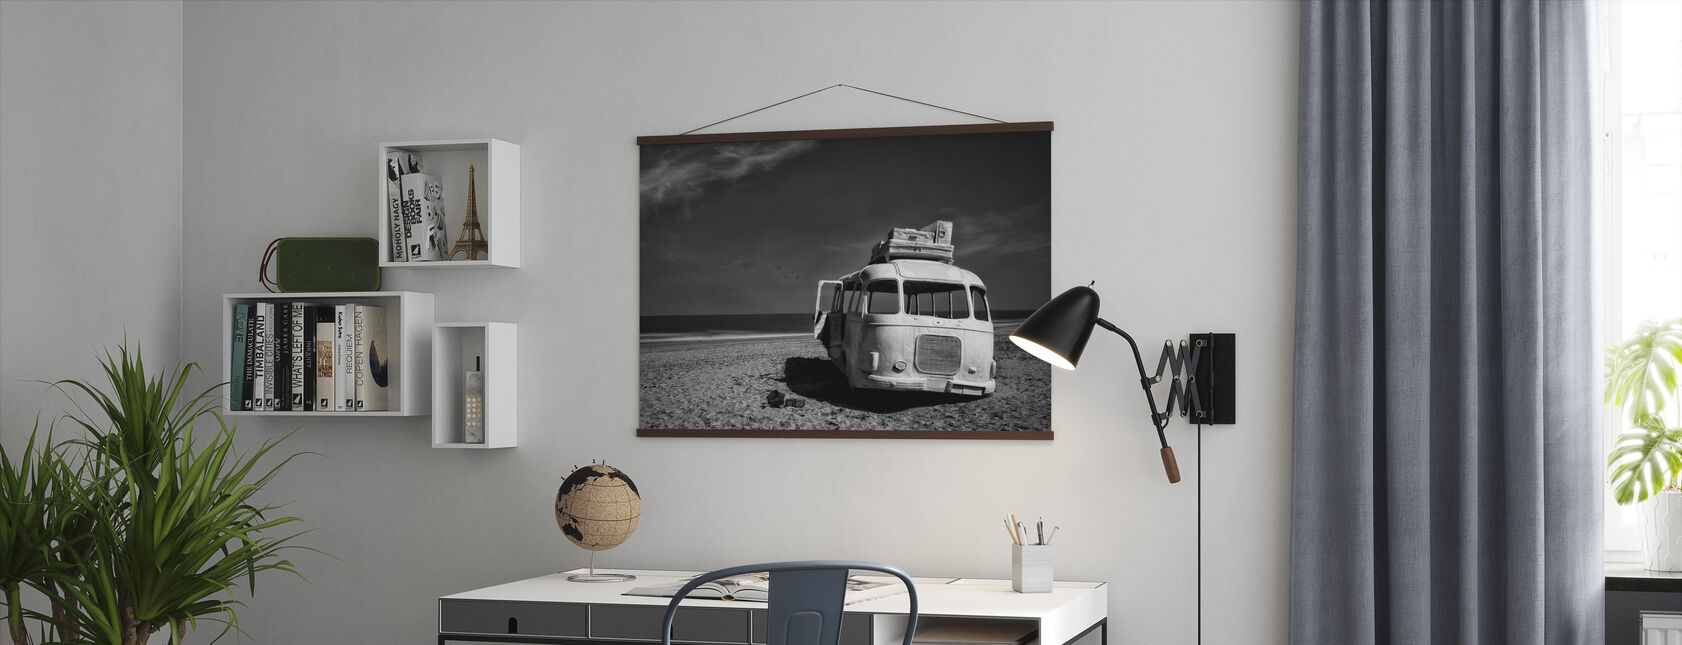 Beached Bus - Poster - Office